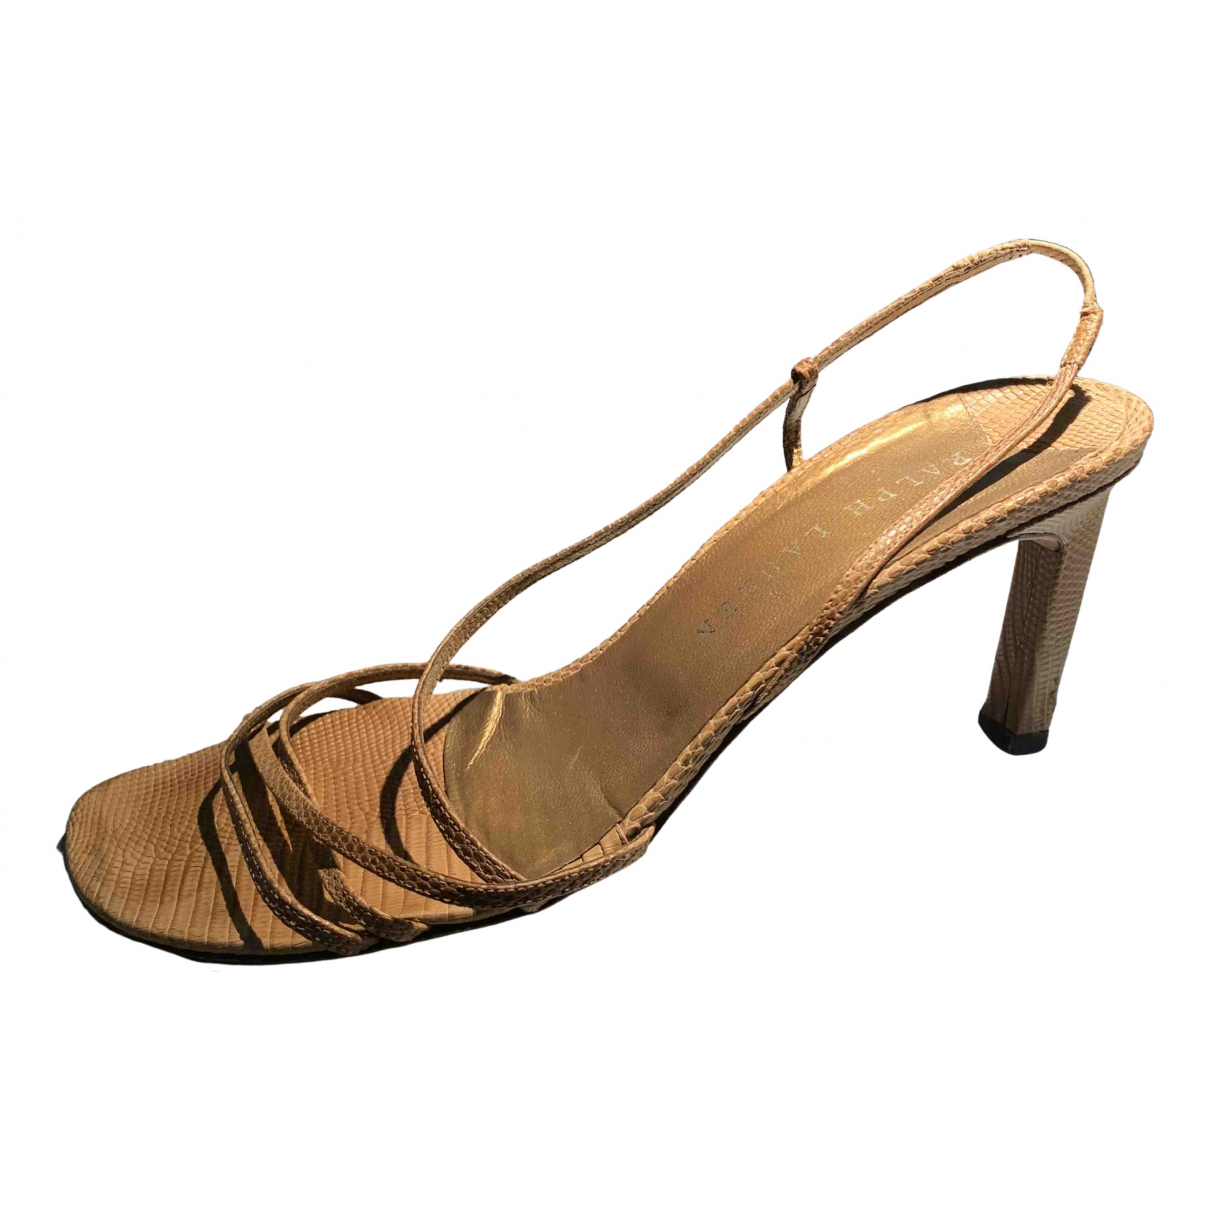 Ralph Lauren N Camel Exotic leathers Sandals for Women 37 EU